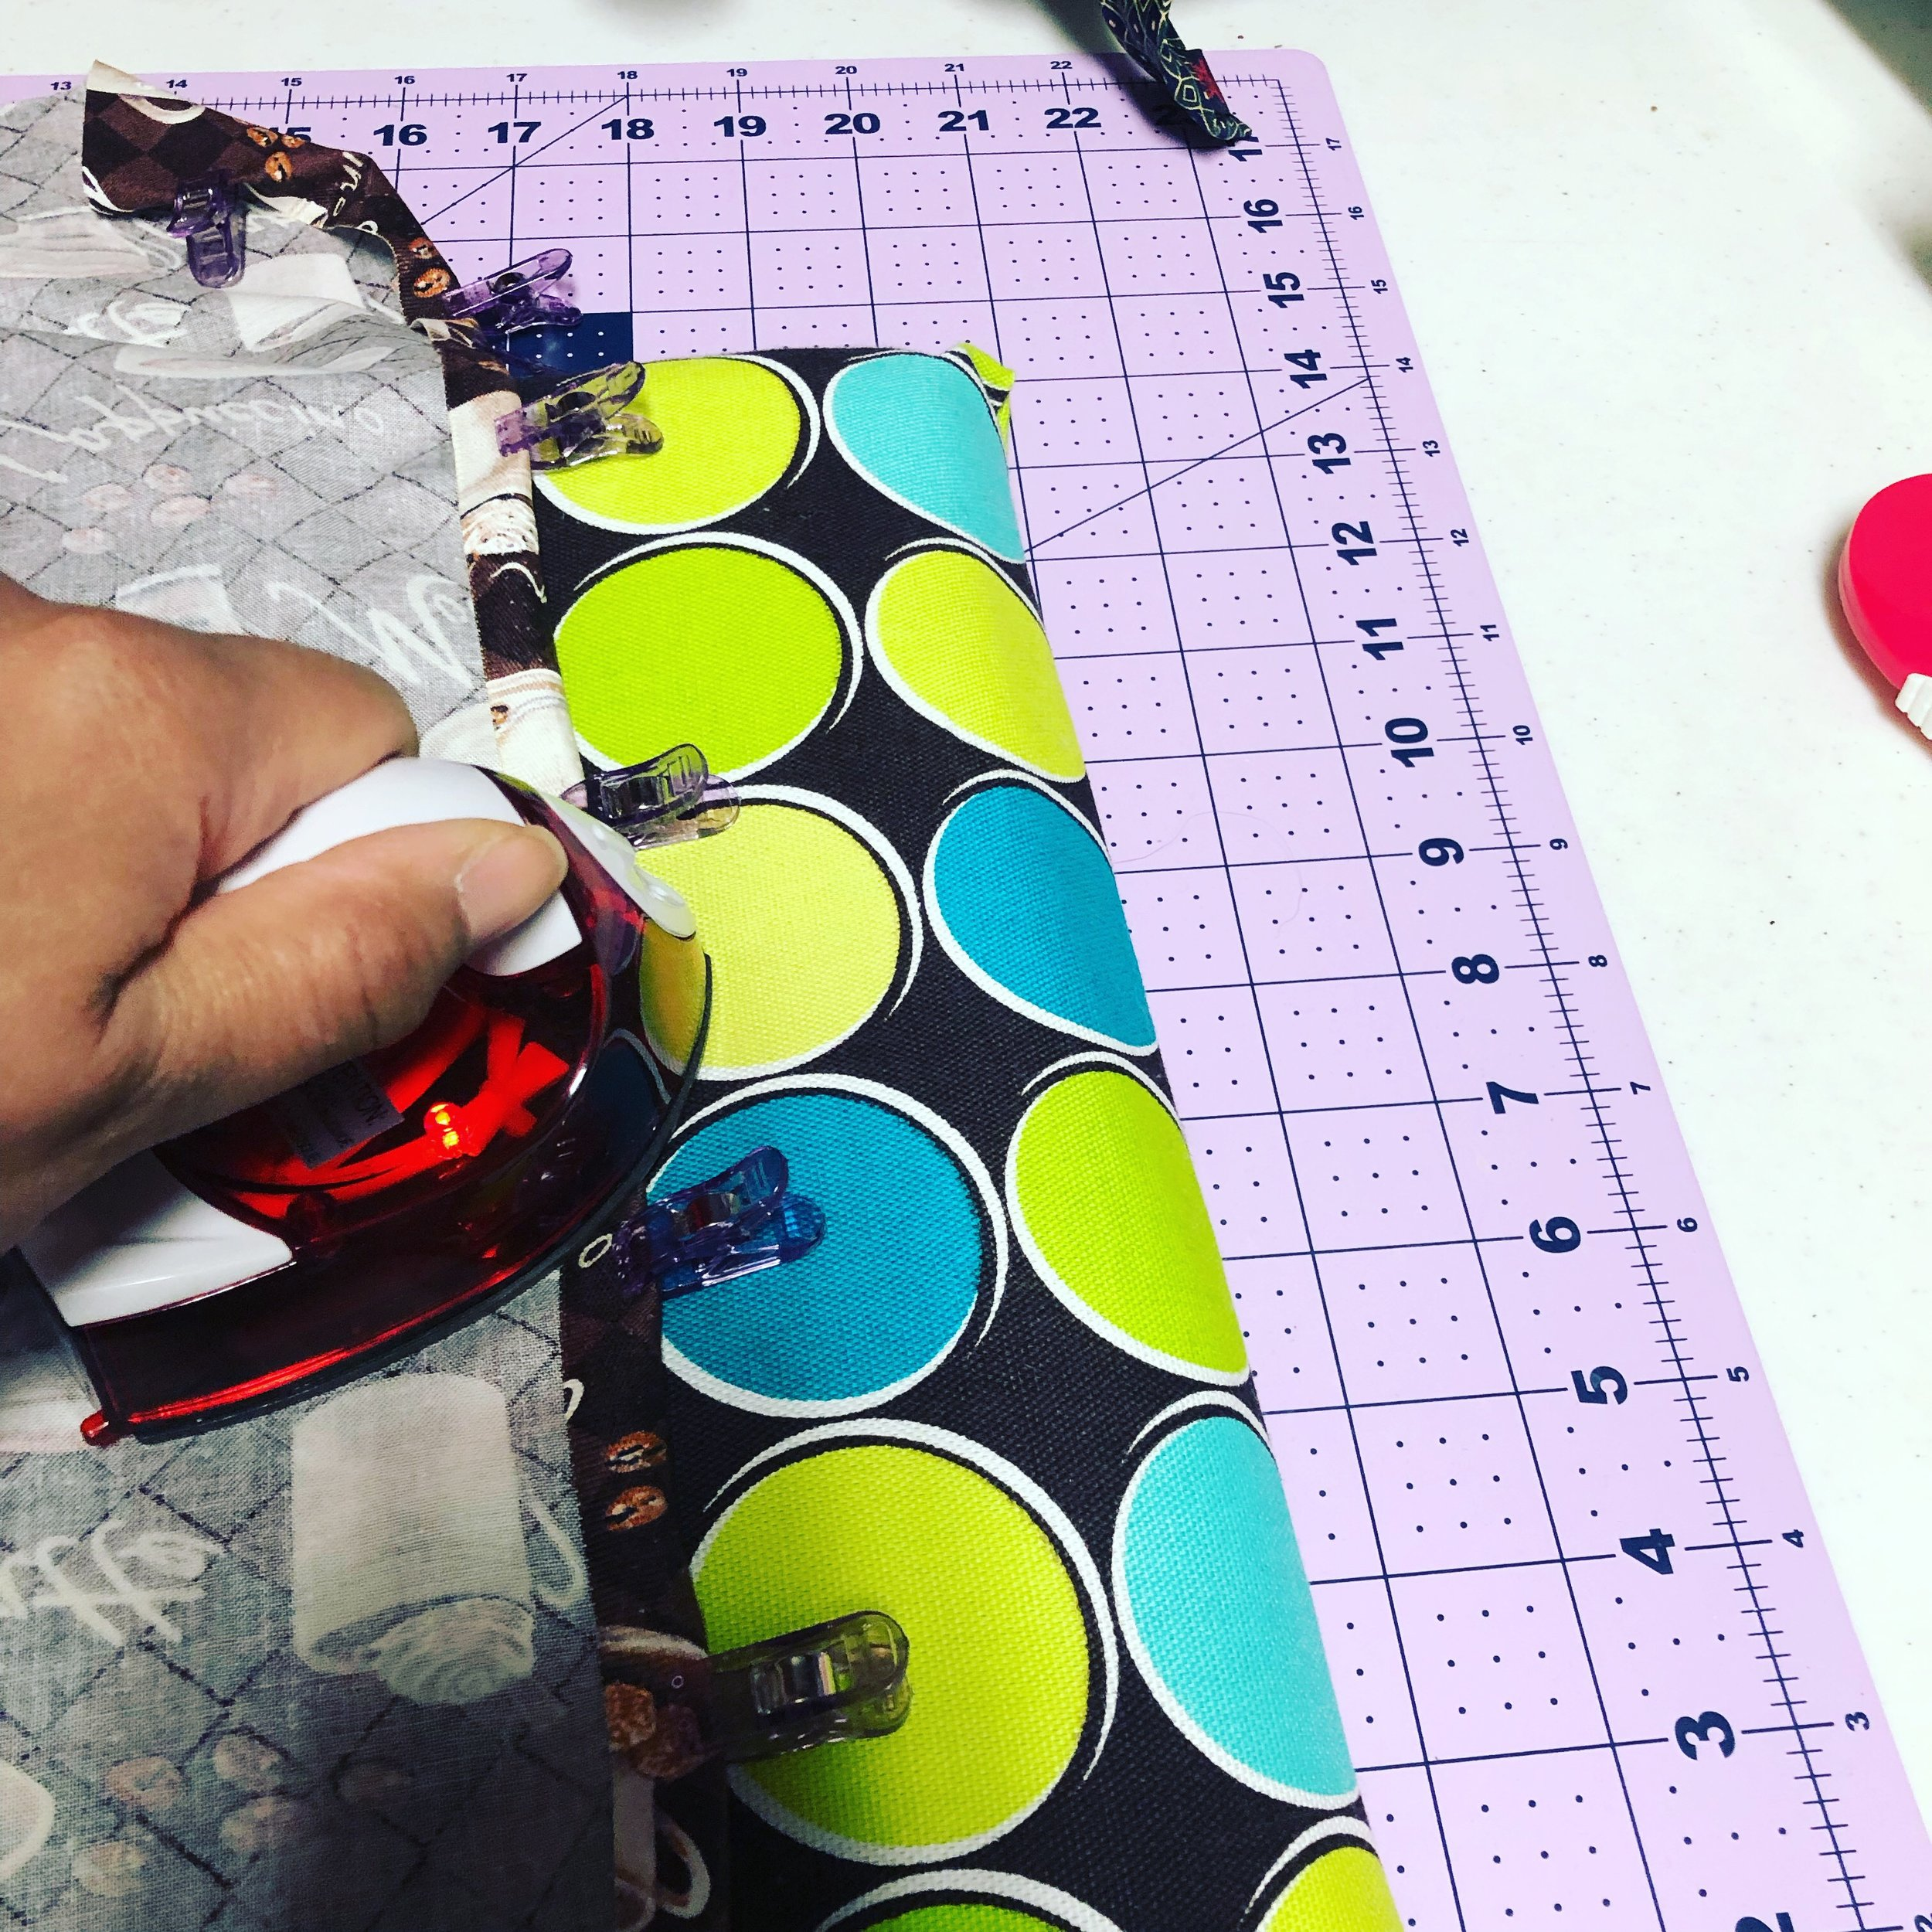 This is my pressing board and travel iron that I use in my sewing room, they help me do quick presses and their portable in case I go to a craft retreat.